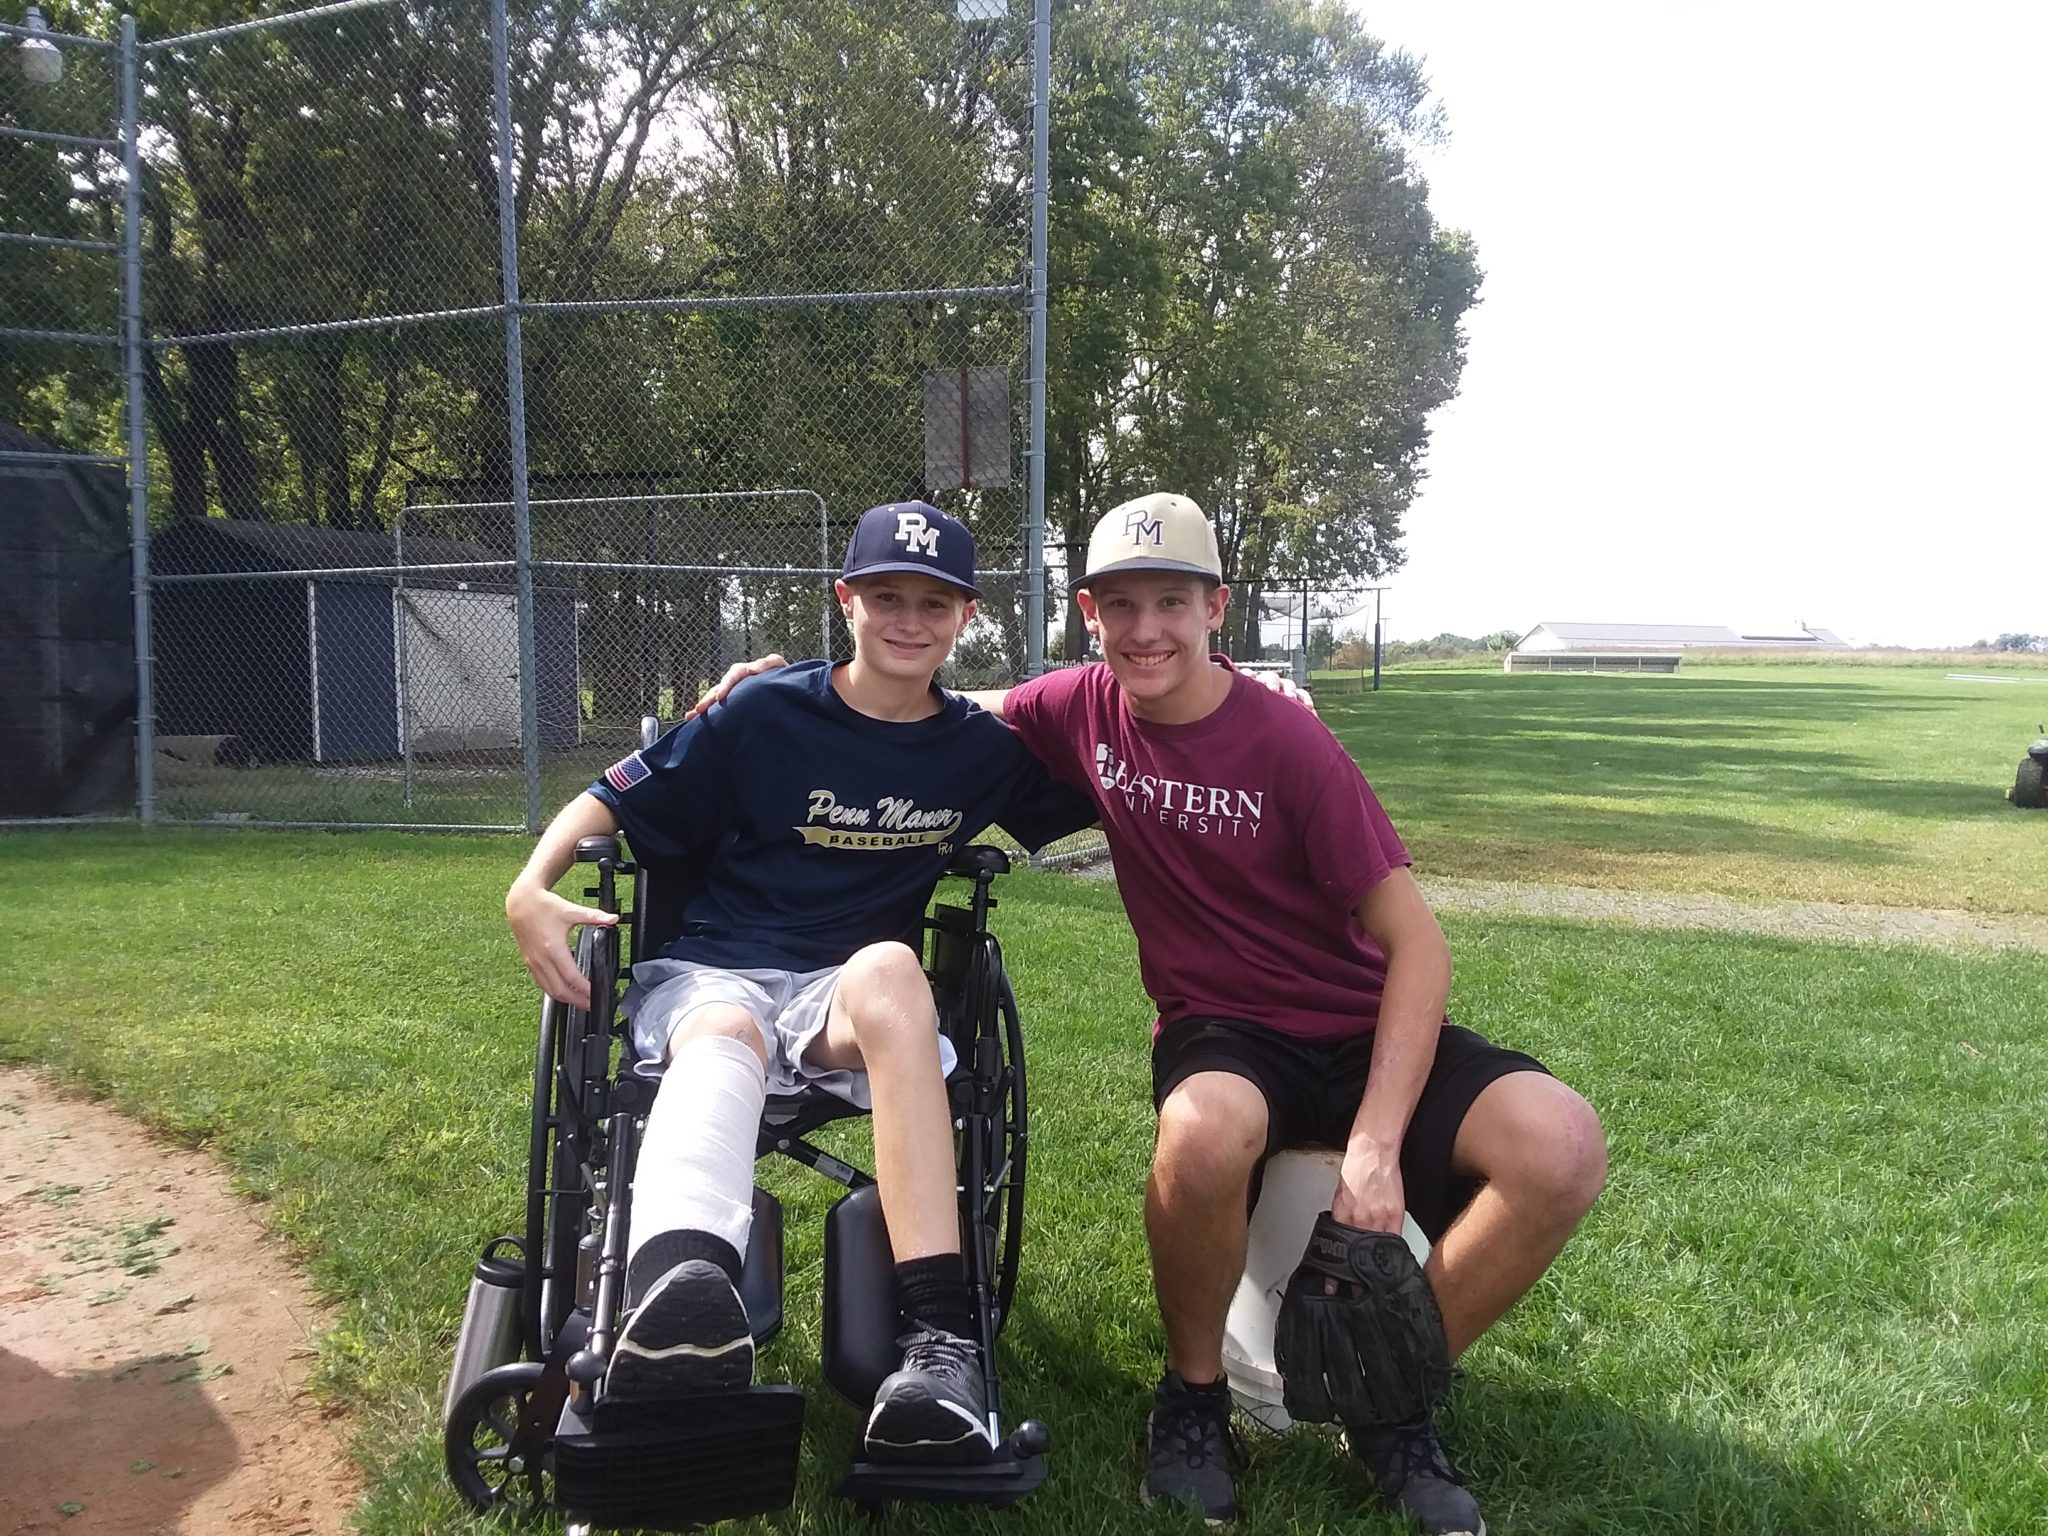 What a joy to see these two guys at batting practice this morning!  It's been a long road of hospital stays, rehabs, and plenty of recovery still to come, but Comet Field is a much better place with Andrew Glenn and Josiah Snyder in the house!!!